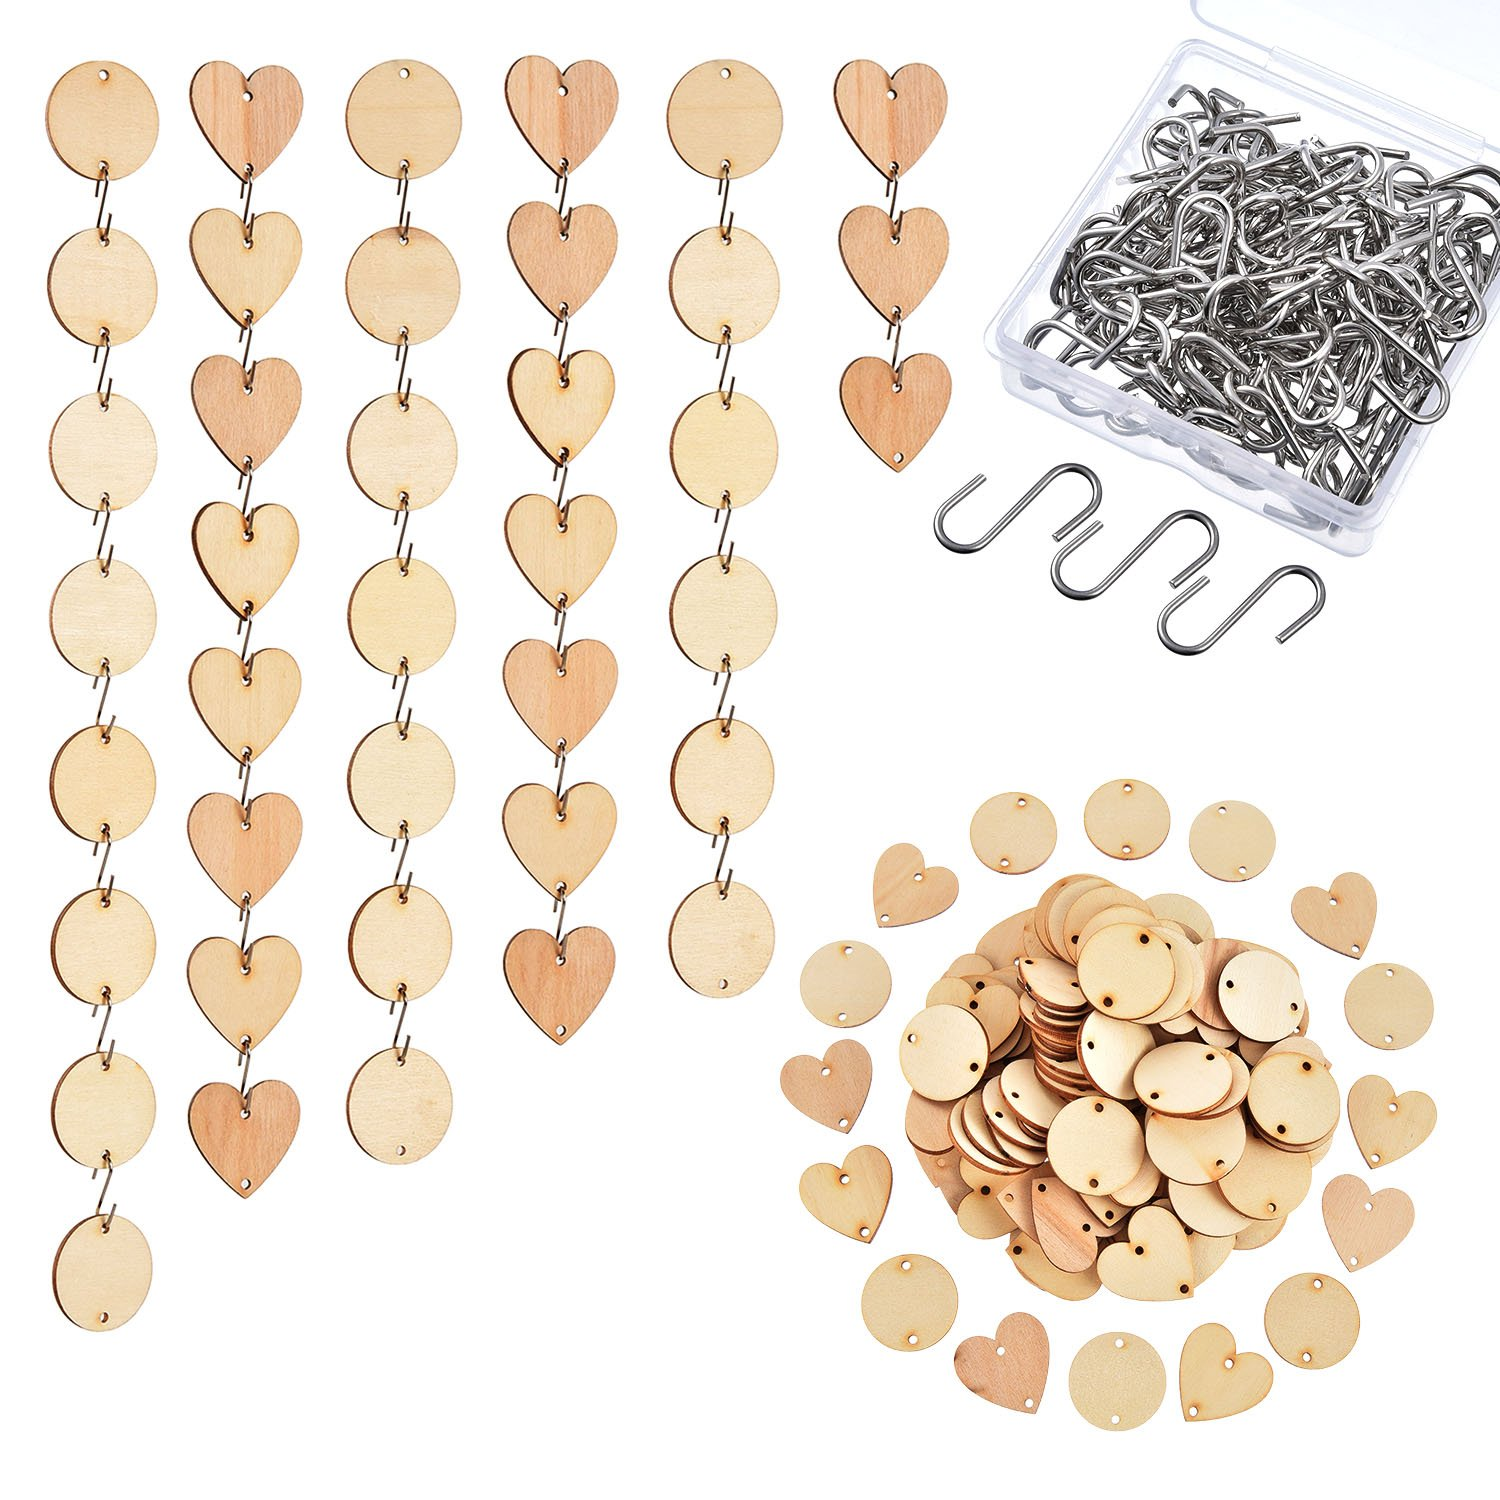 Hicarer 240 Pieces in Total, Wooden Circles Wooden Heart Tags with Holes and S Hook Connectors for Birthday Boards, Valentine, Chore Boards and Crafts